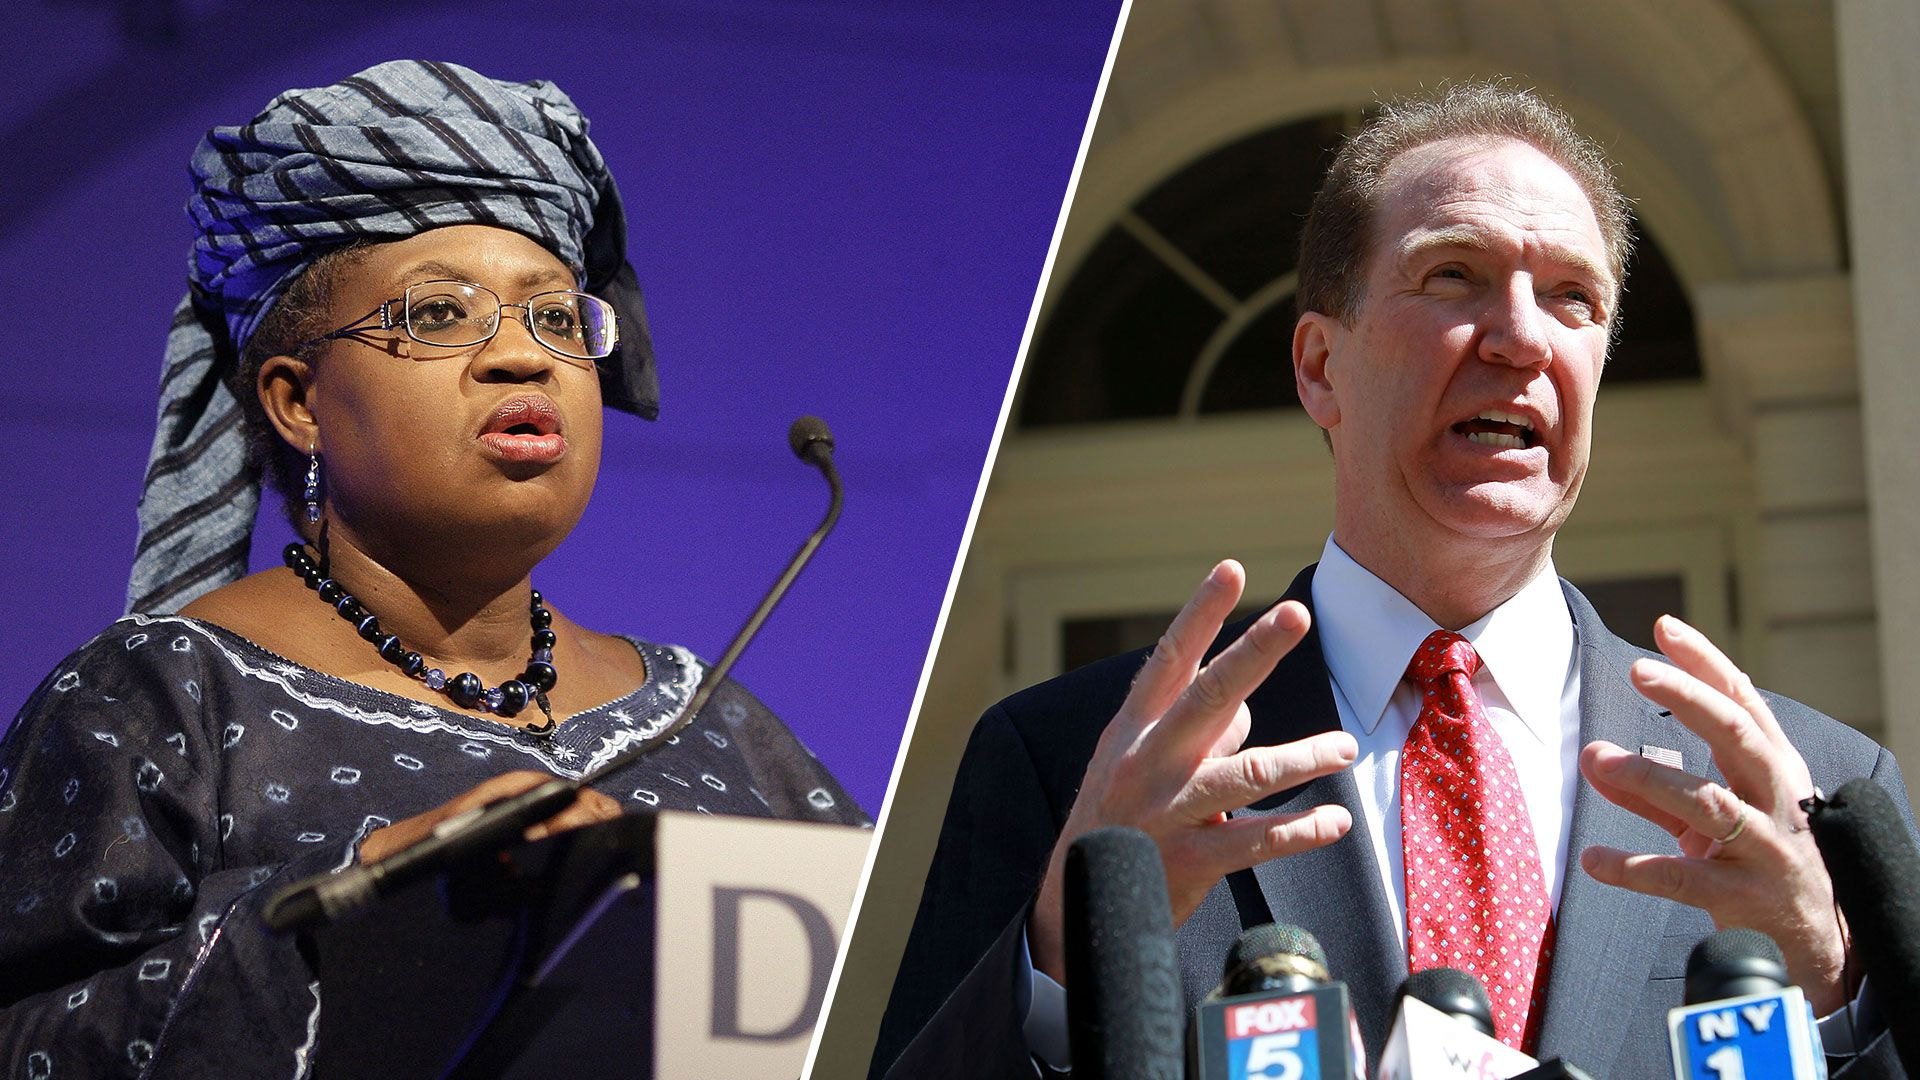 Photos of Ngozi Okonjo-Iweala and David Malpass